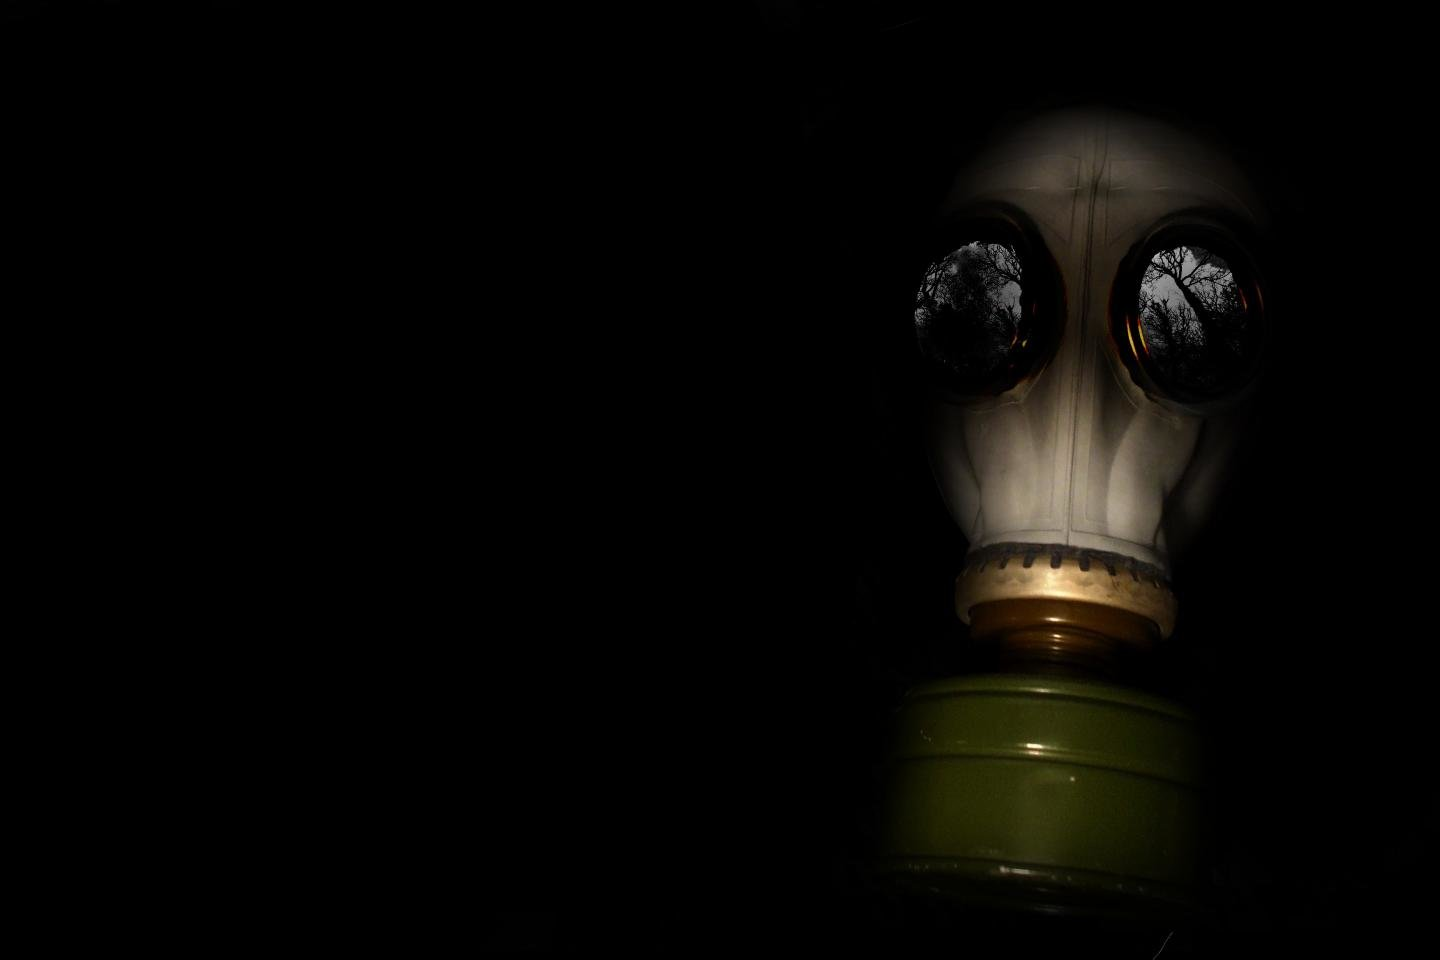 High resolution Gas Mask hd 1440x960 background ID:161629 for desktop